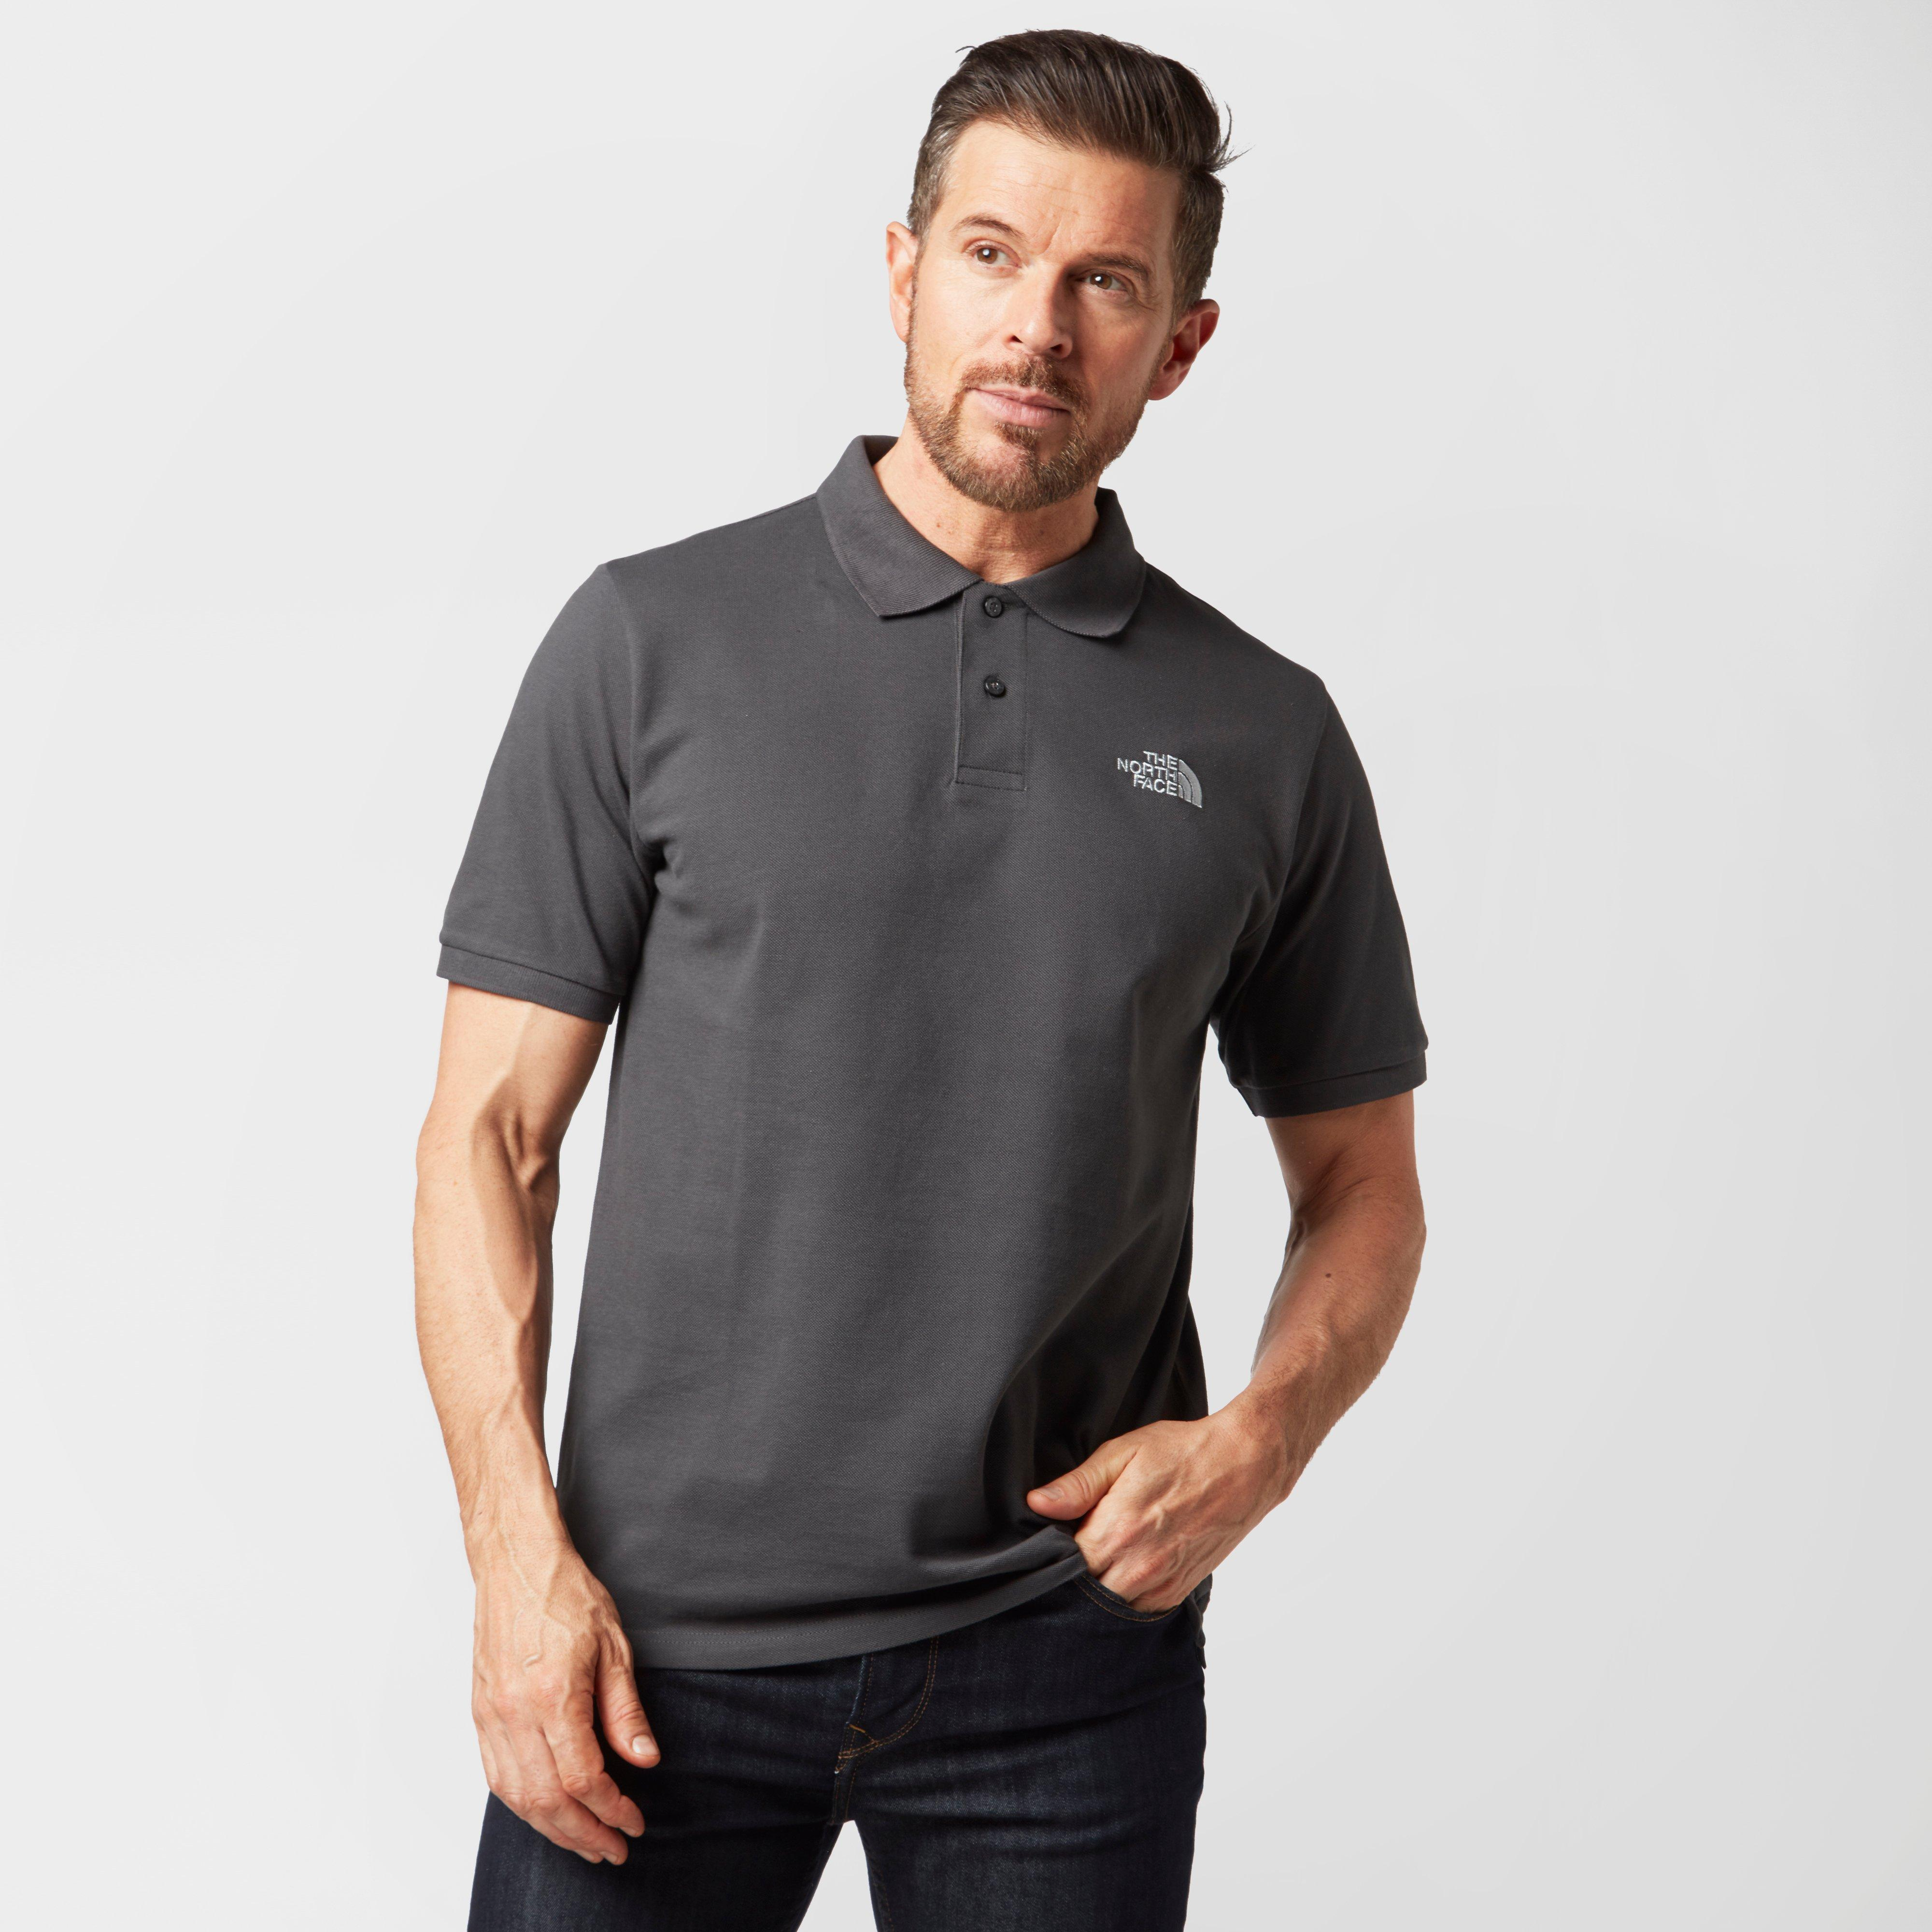 d9adf62d1 Men's Piquet Polo Shirt